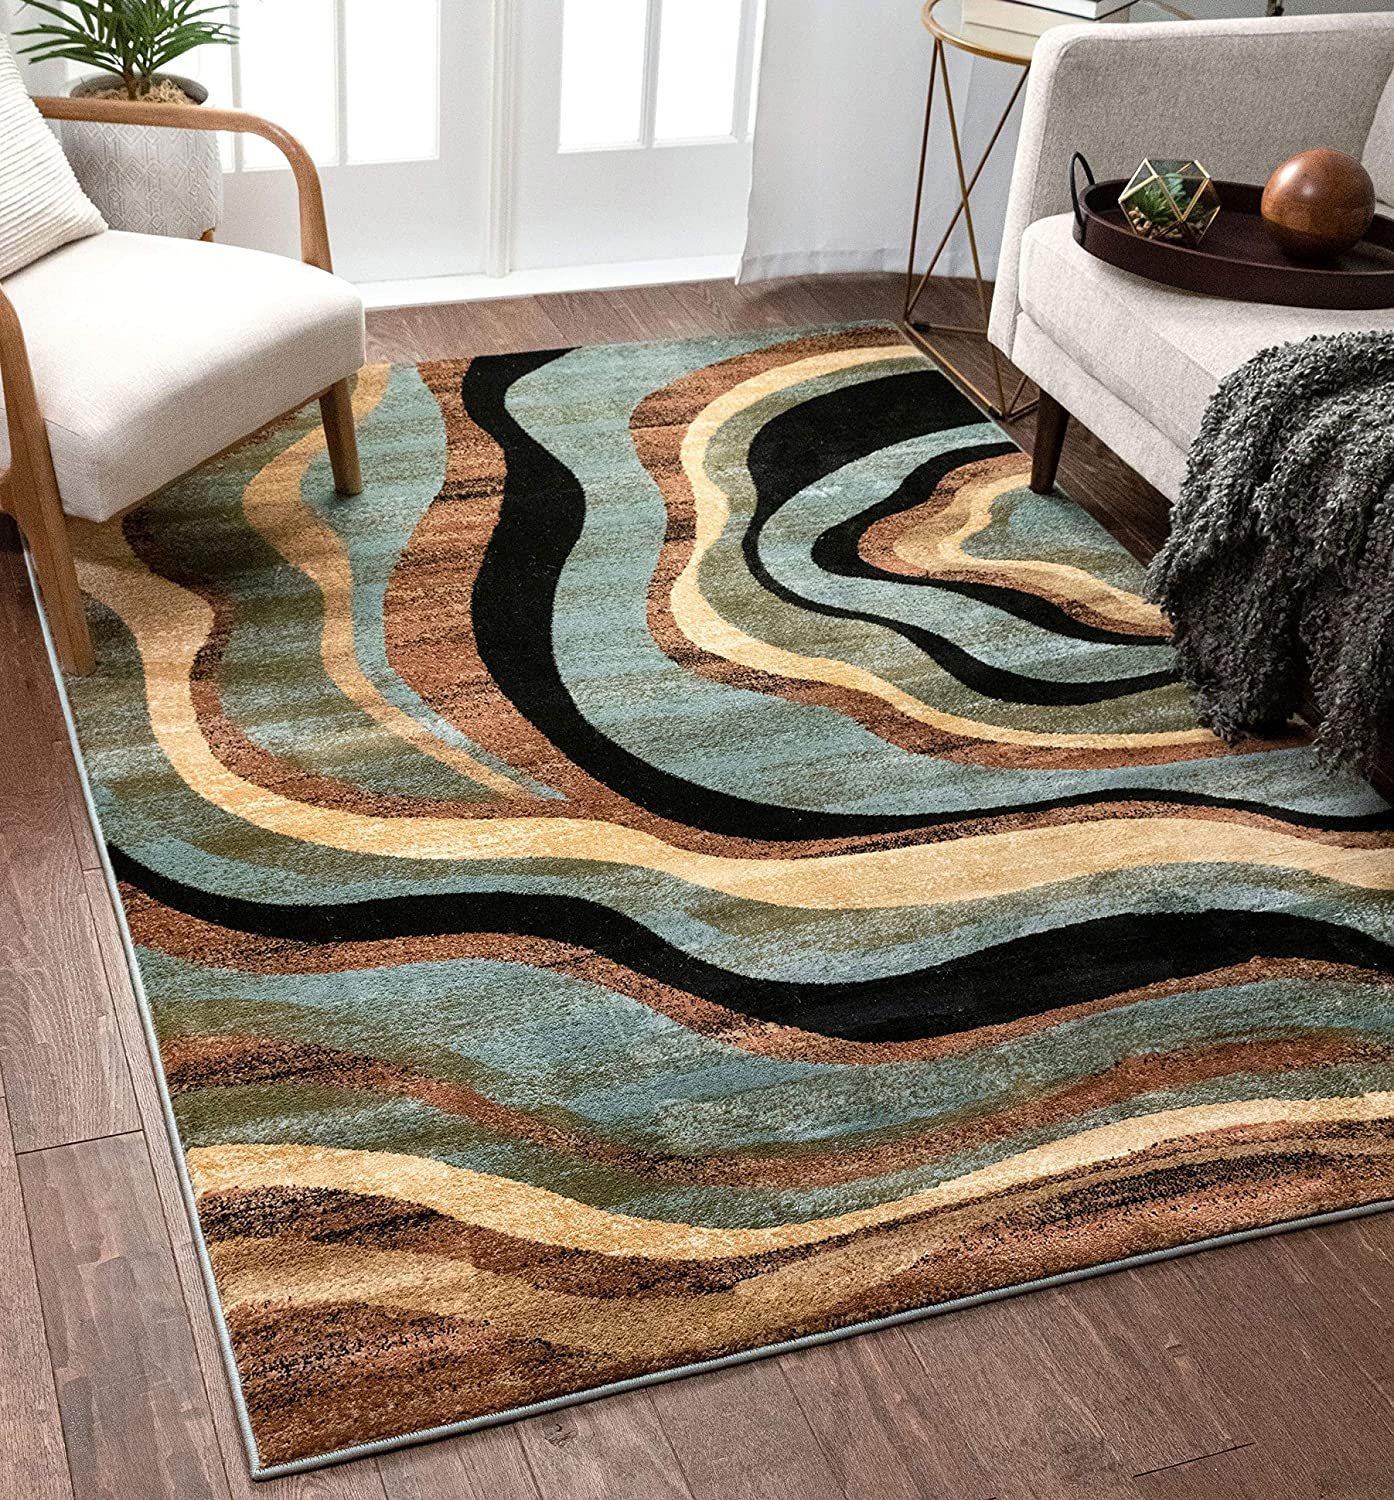 Amazon Com Hudson Waves Blue Brown Geometric Modern Casual Area Rug 7x10 6 7 X 9 6 Easy To Clean Stain Fade Resistant Shed Free Abstract Contemporary Natural Lines Multi Soft Living Dining